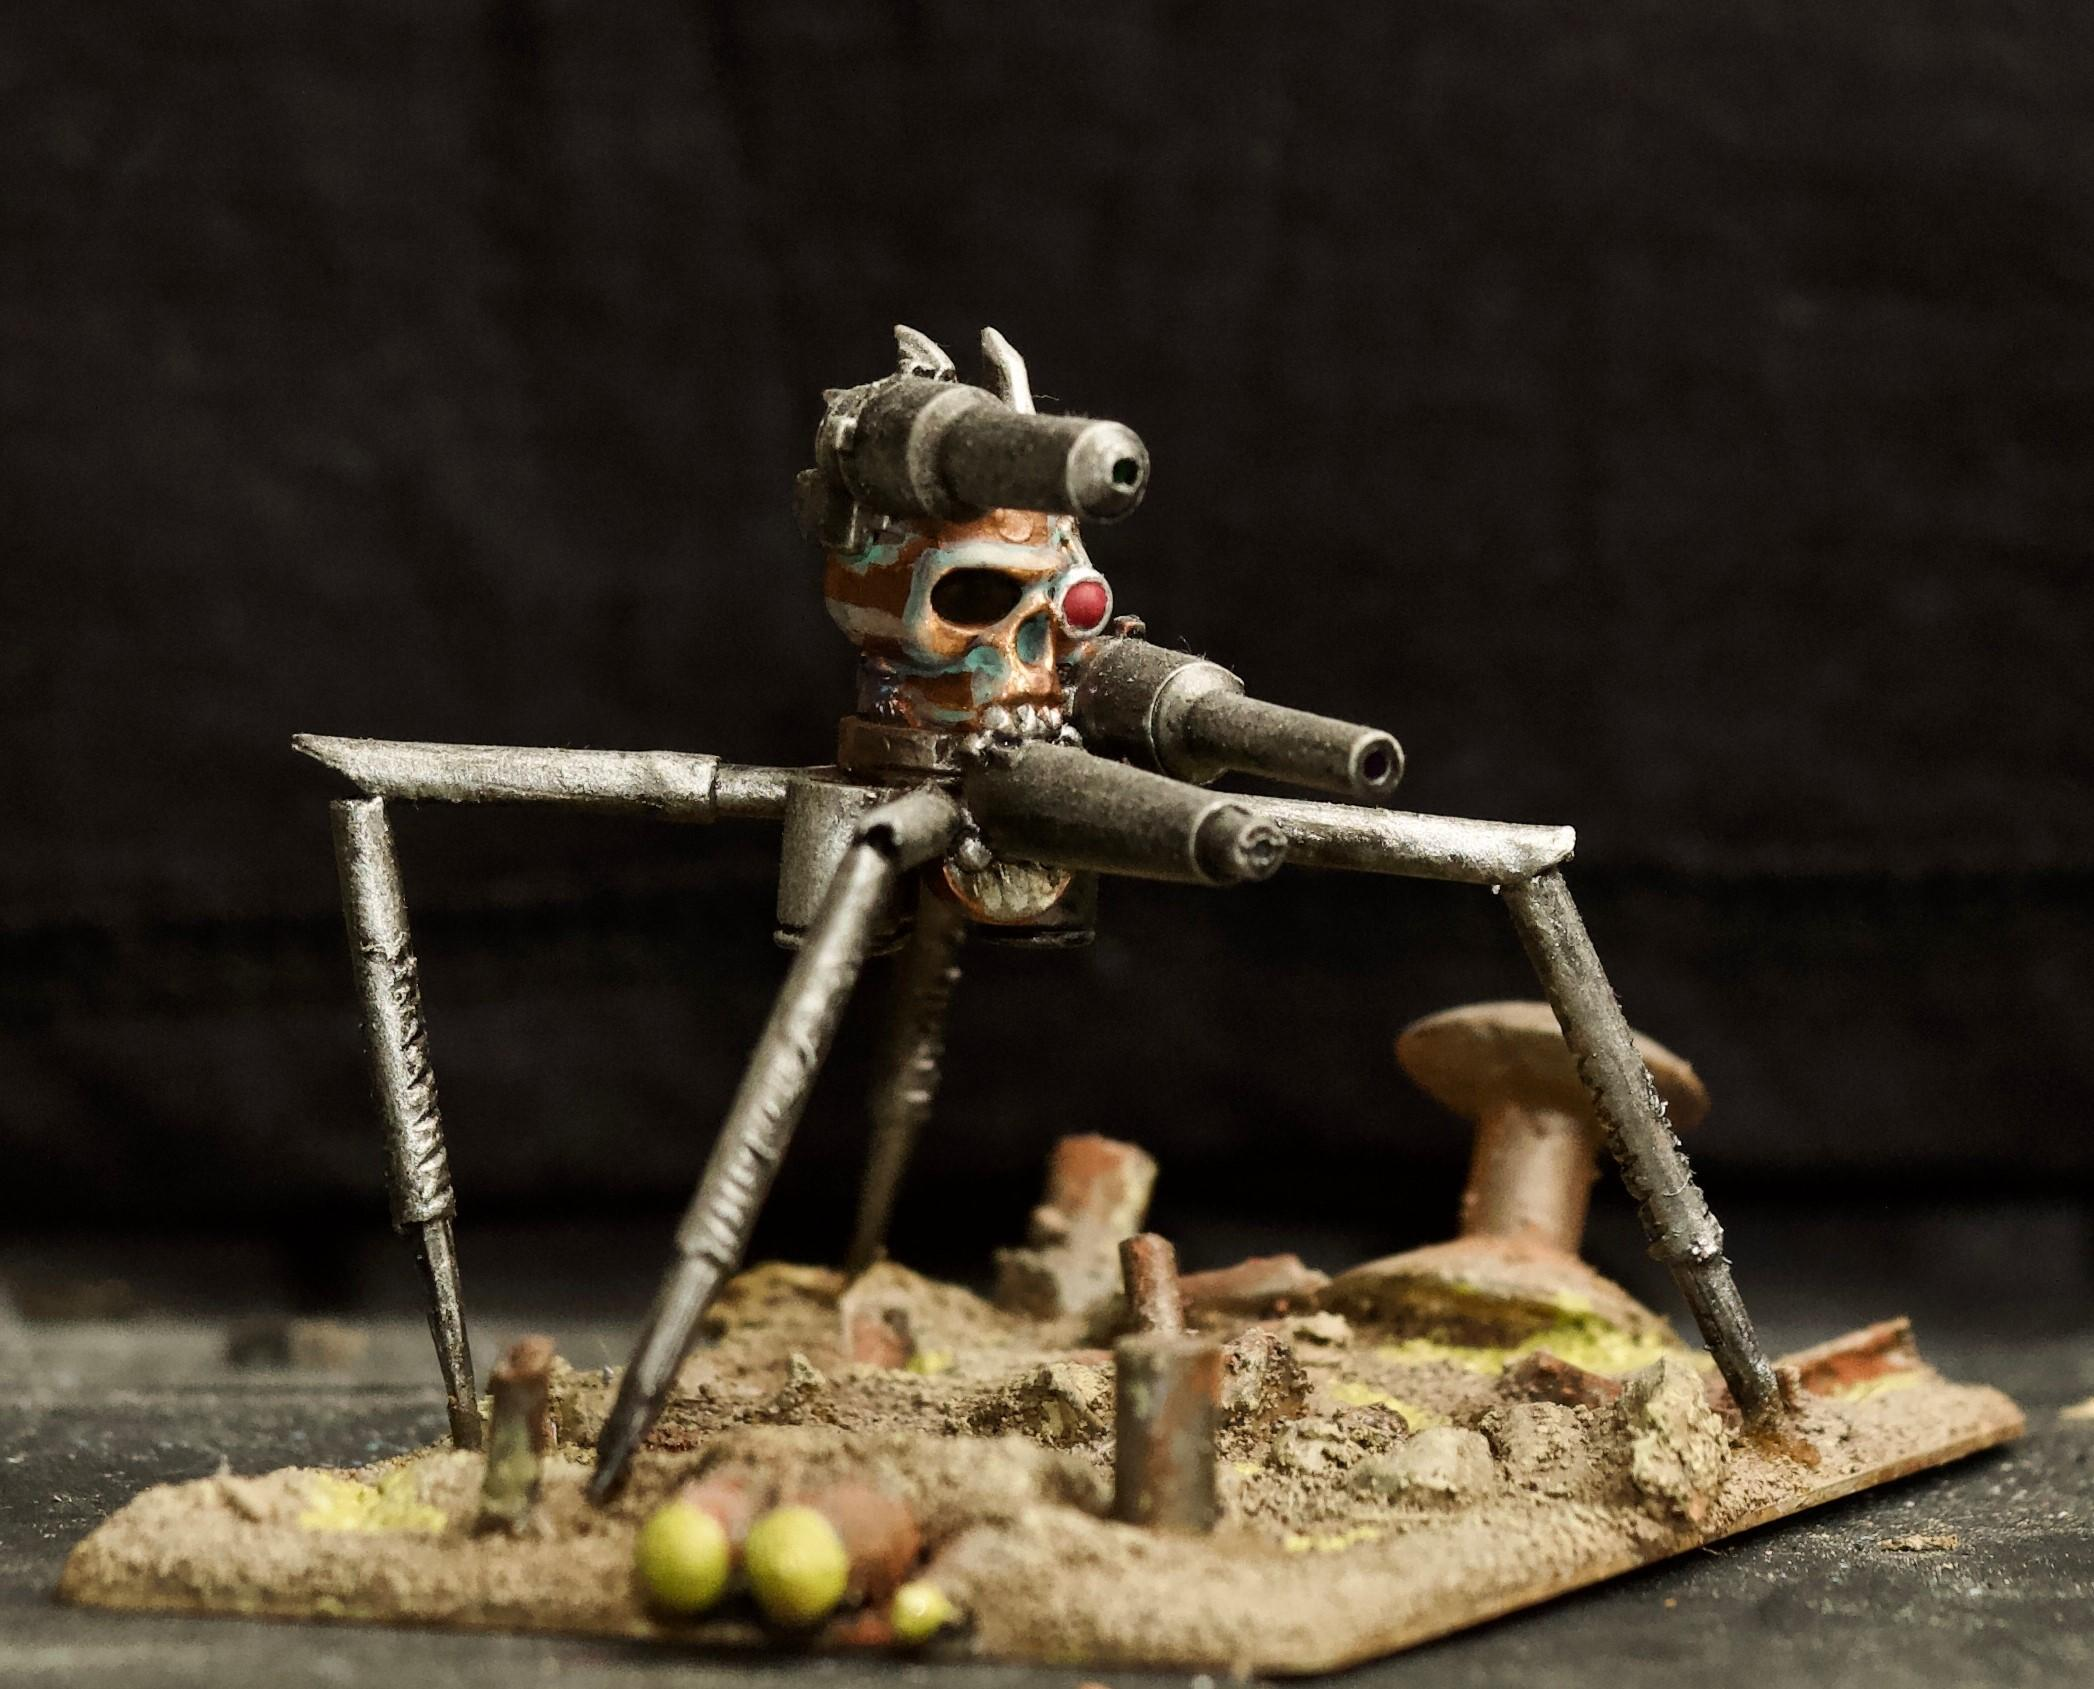 Awesome Photos, By Andrey Mishuta, Chaos, Conversion, Dark Mechanicus, Laser, M.a.k., Scratch Build, Servitors, Skull, Warhammer 40,000